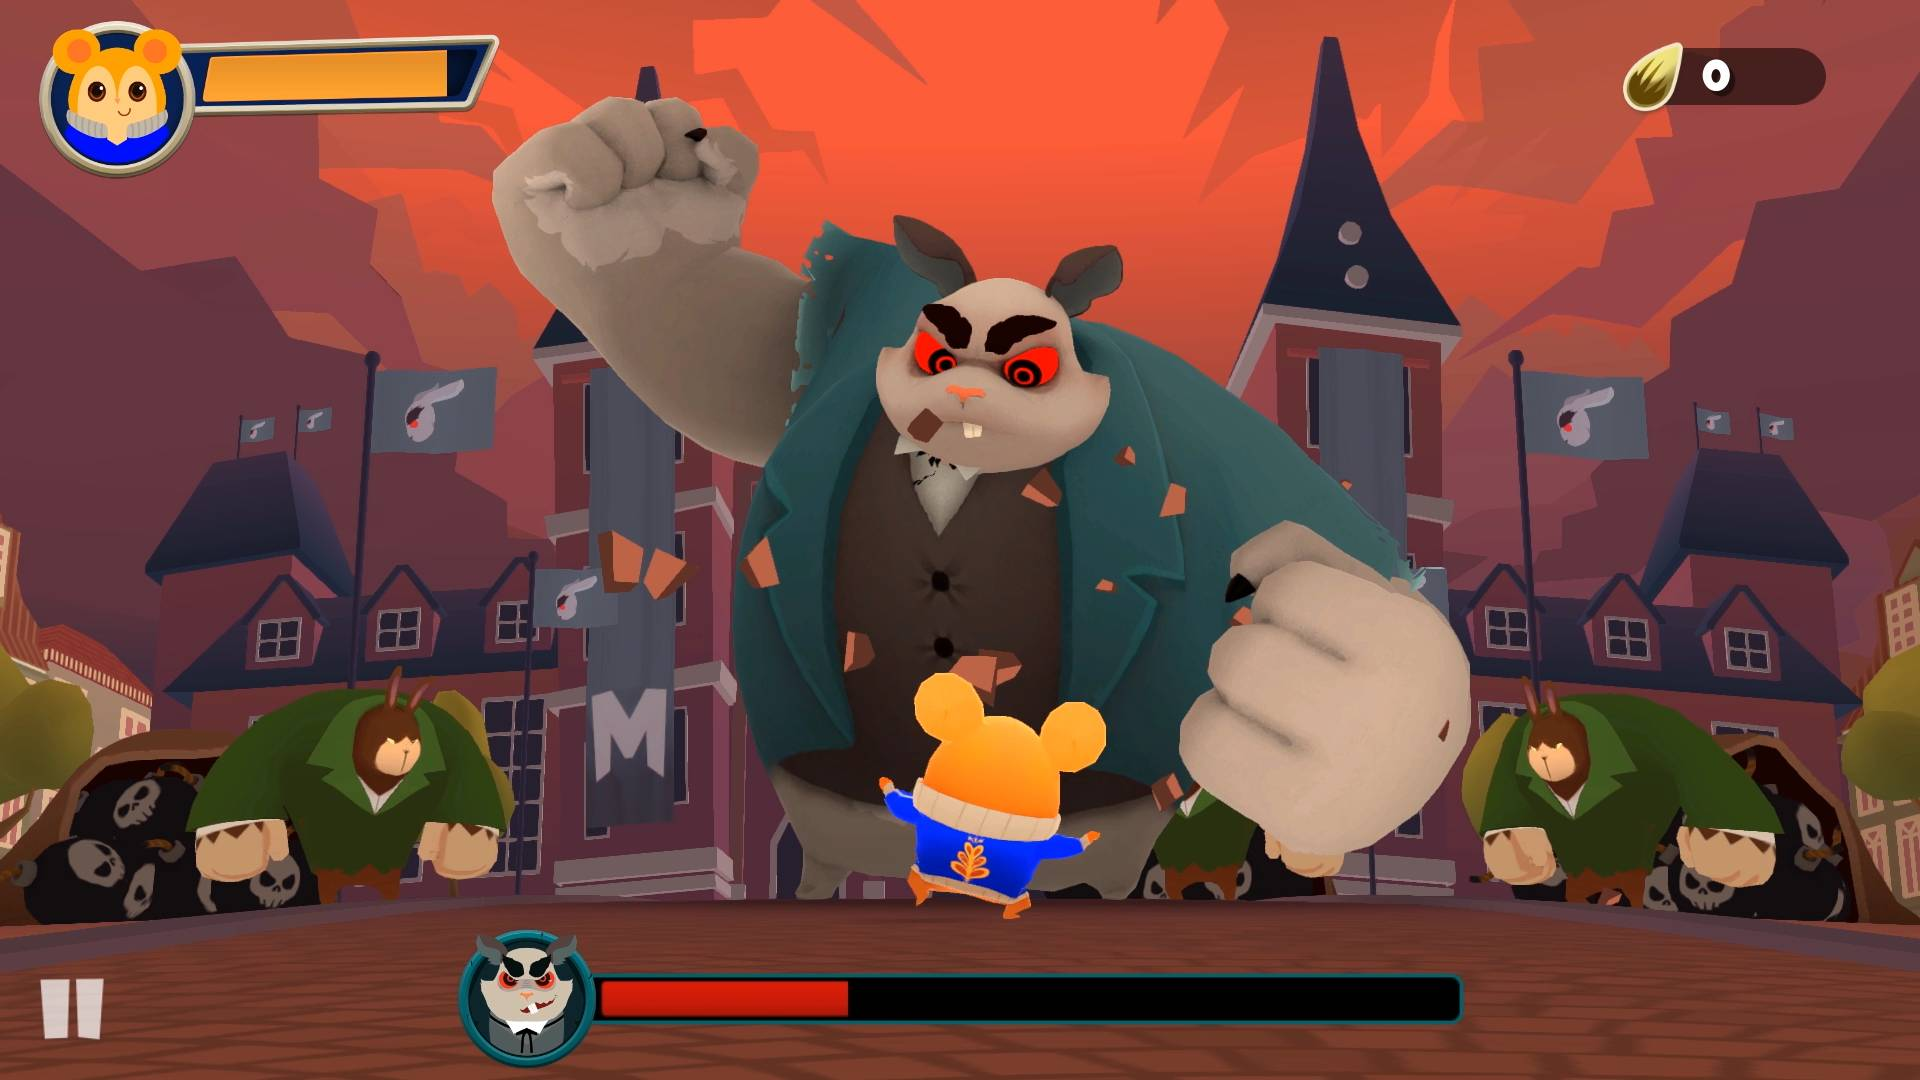 Hamsterdammod apk download for pc, ios and android